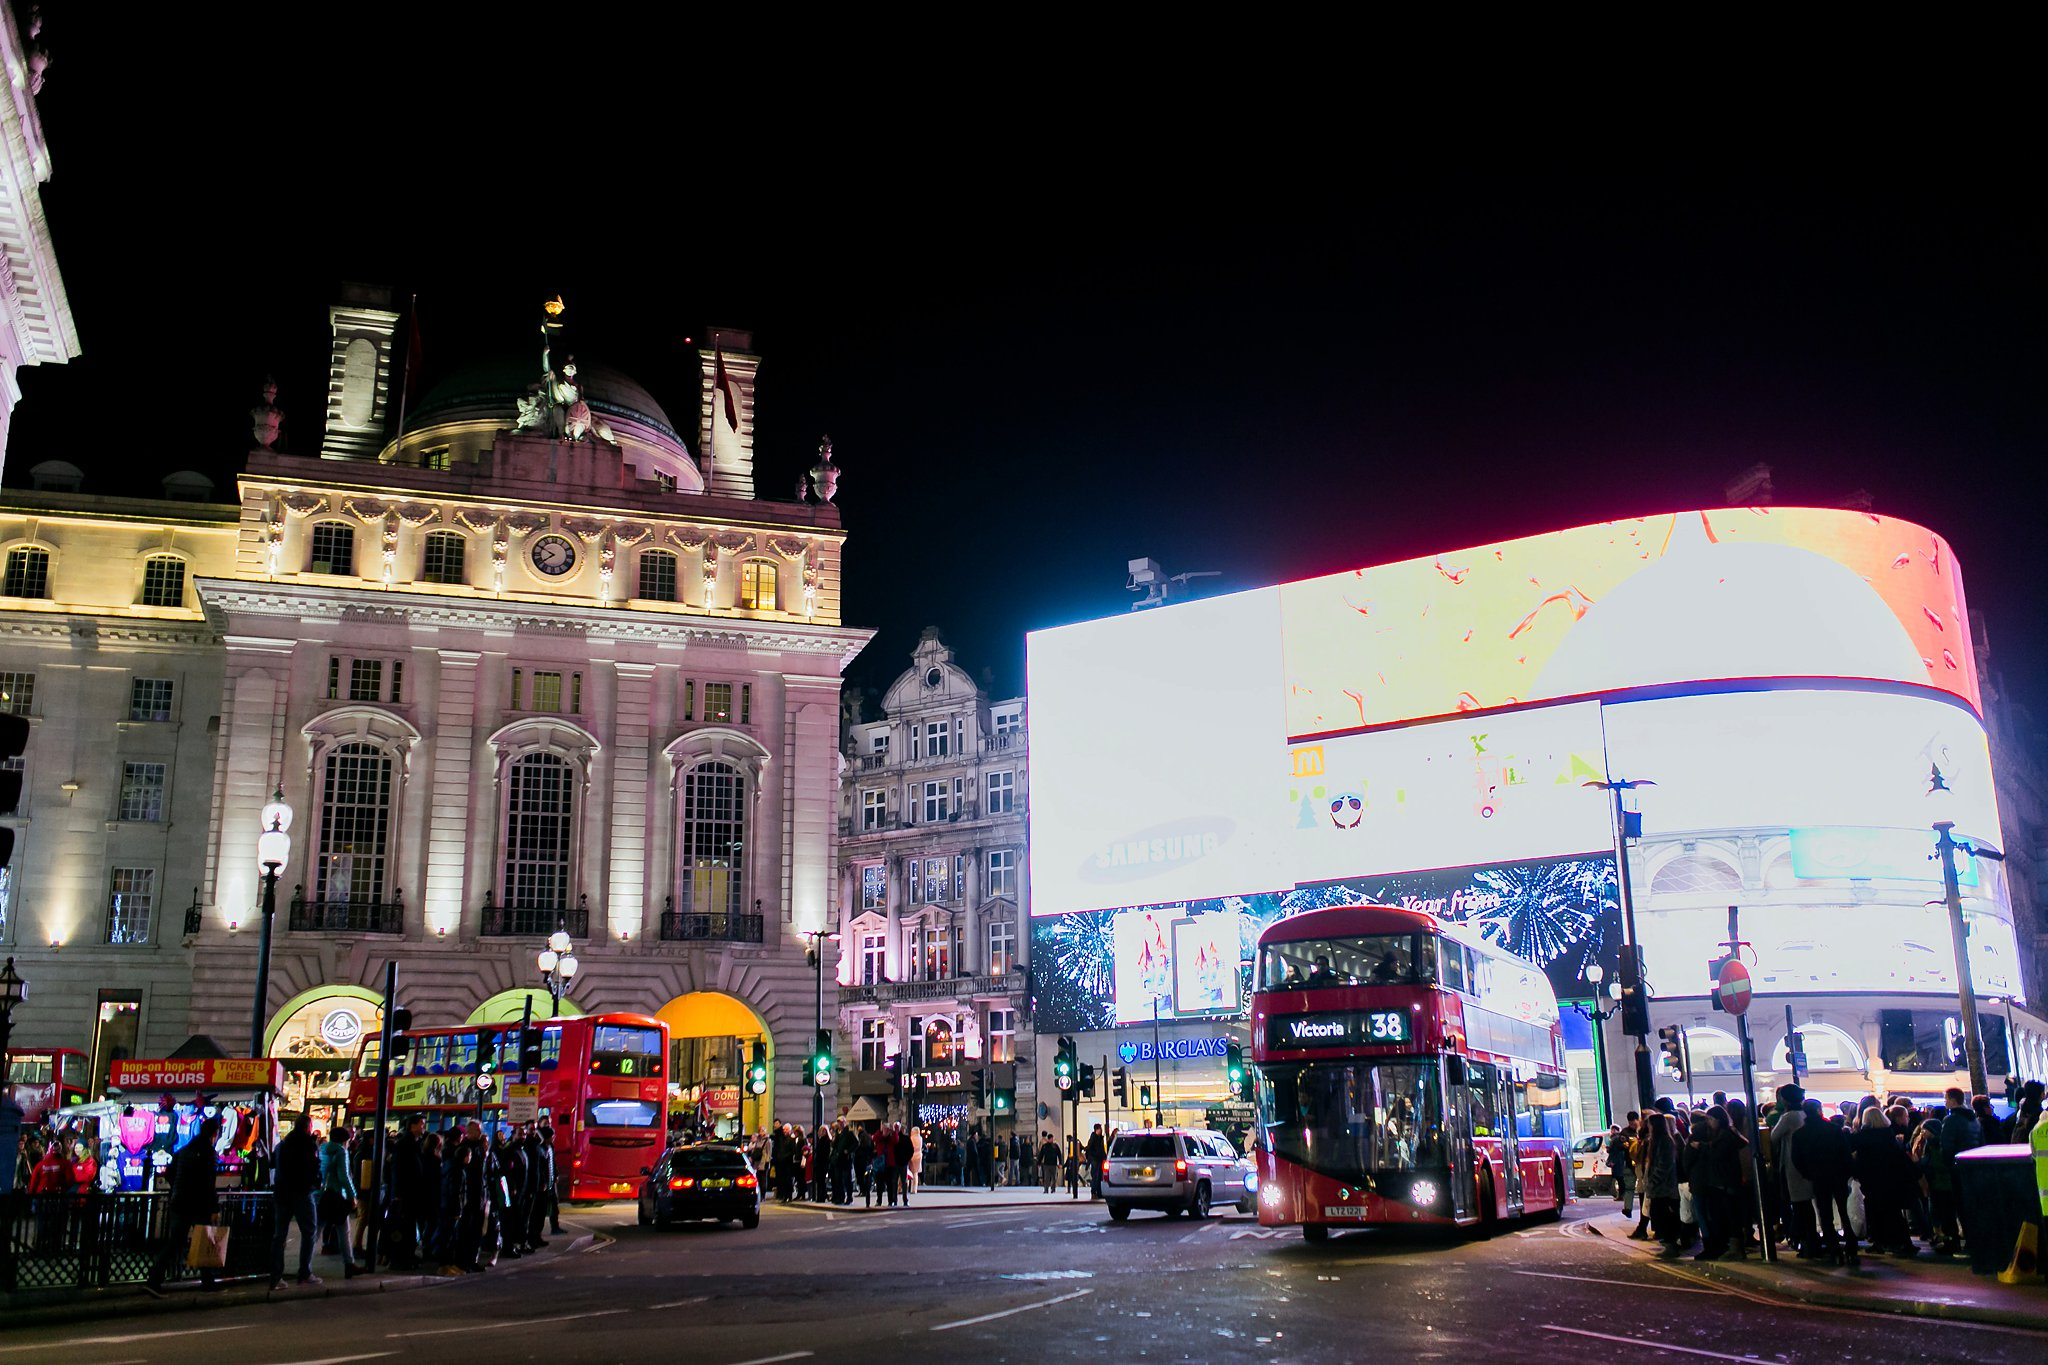 London Part I British Museum London Eye Piccadilly Circus-1443.jpg